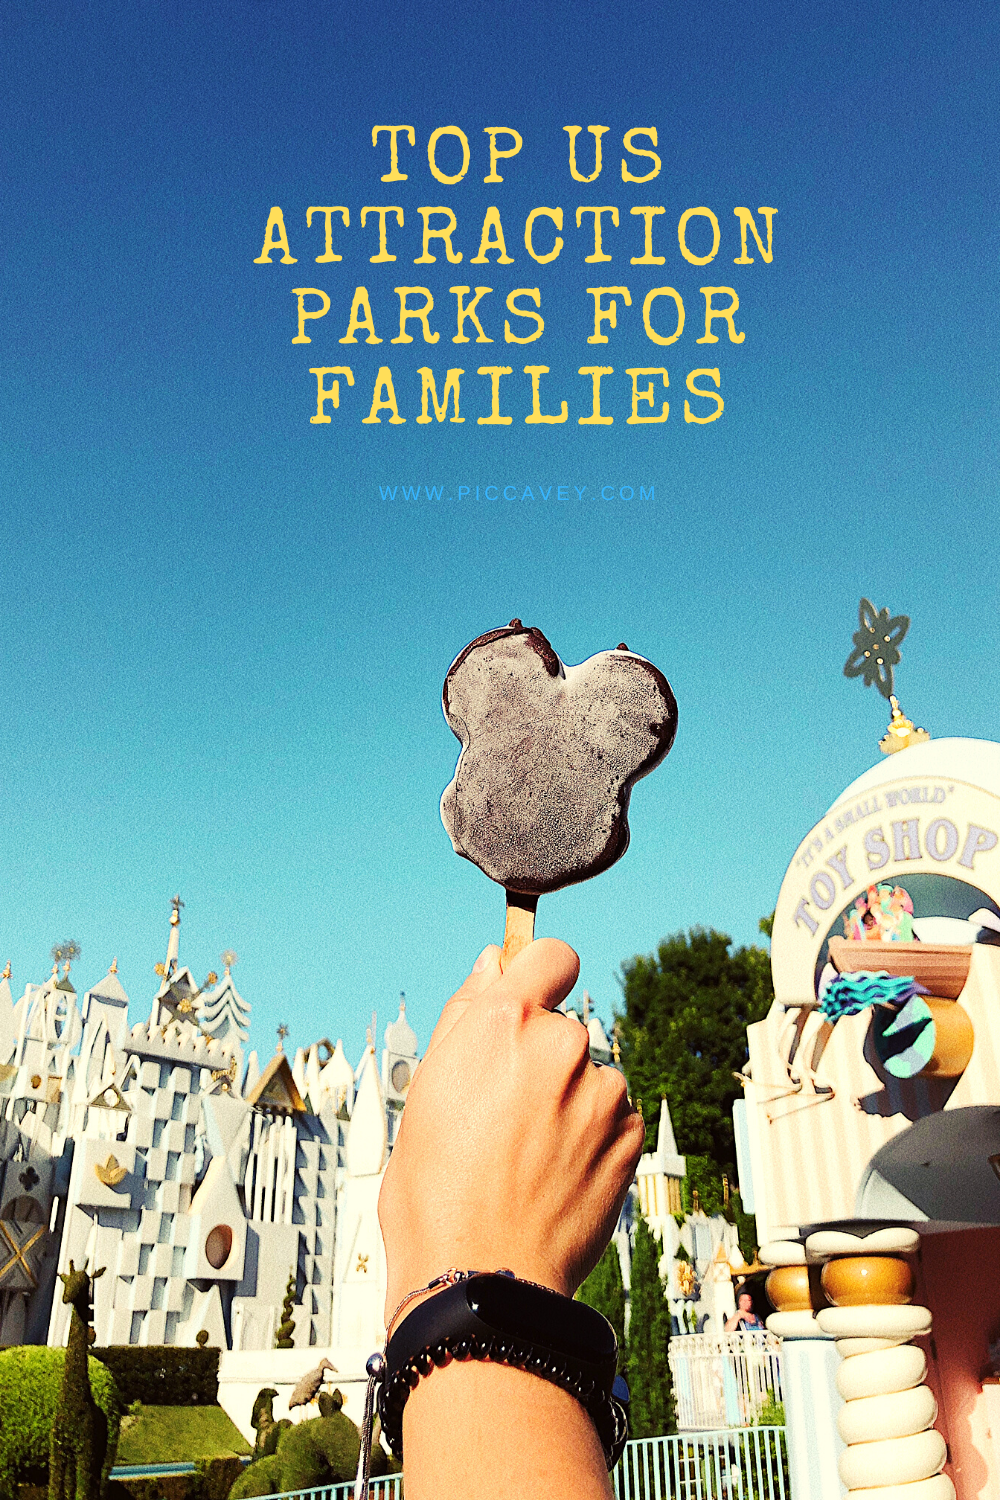 US ATTRACTION PARKS FOR FAMILIES